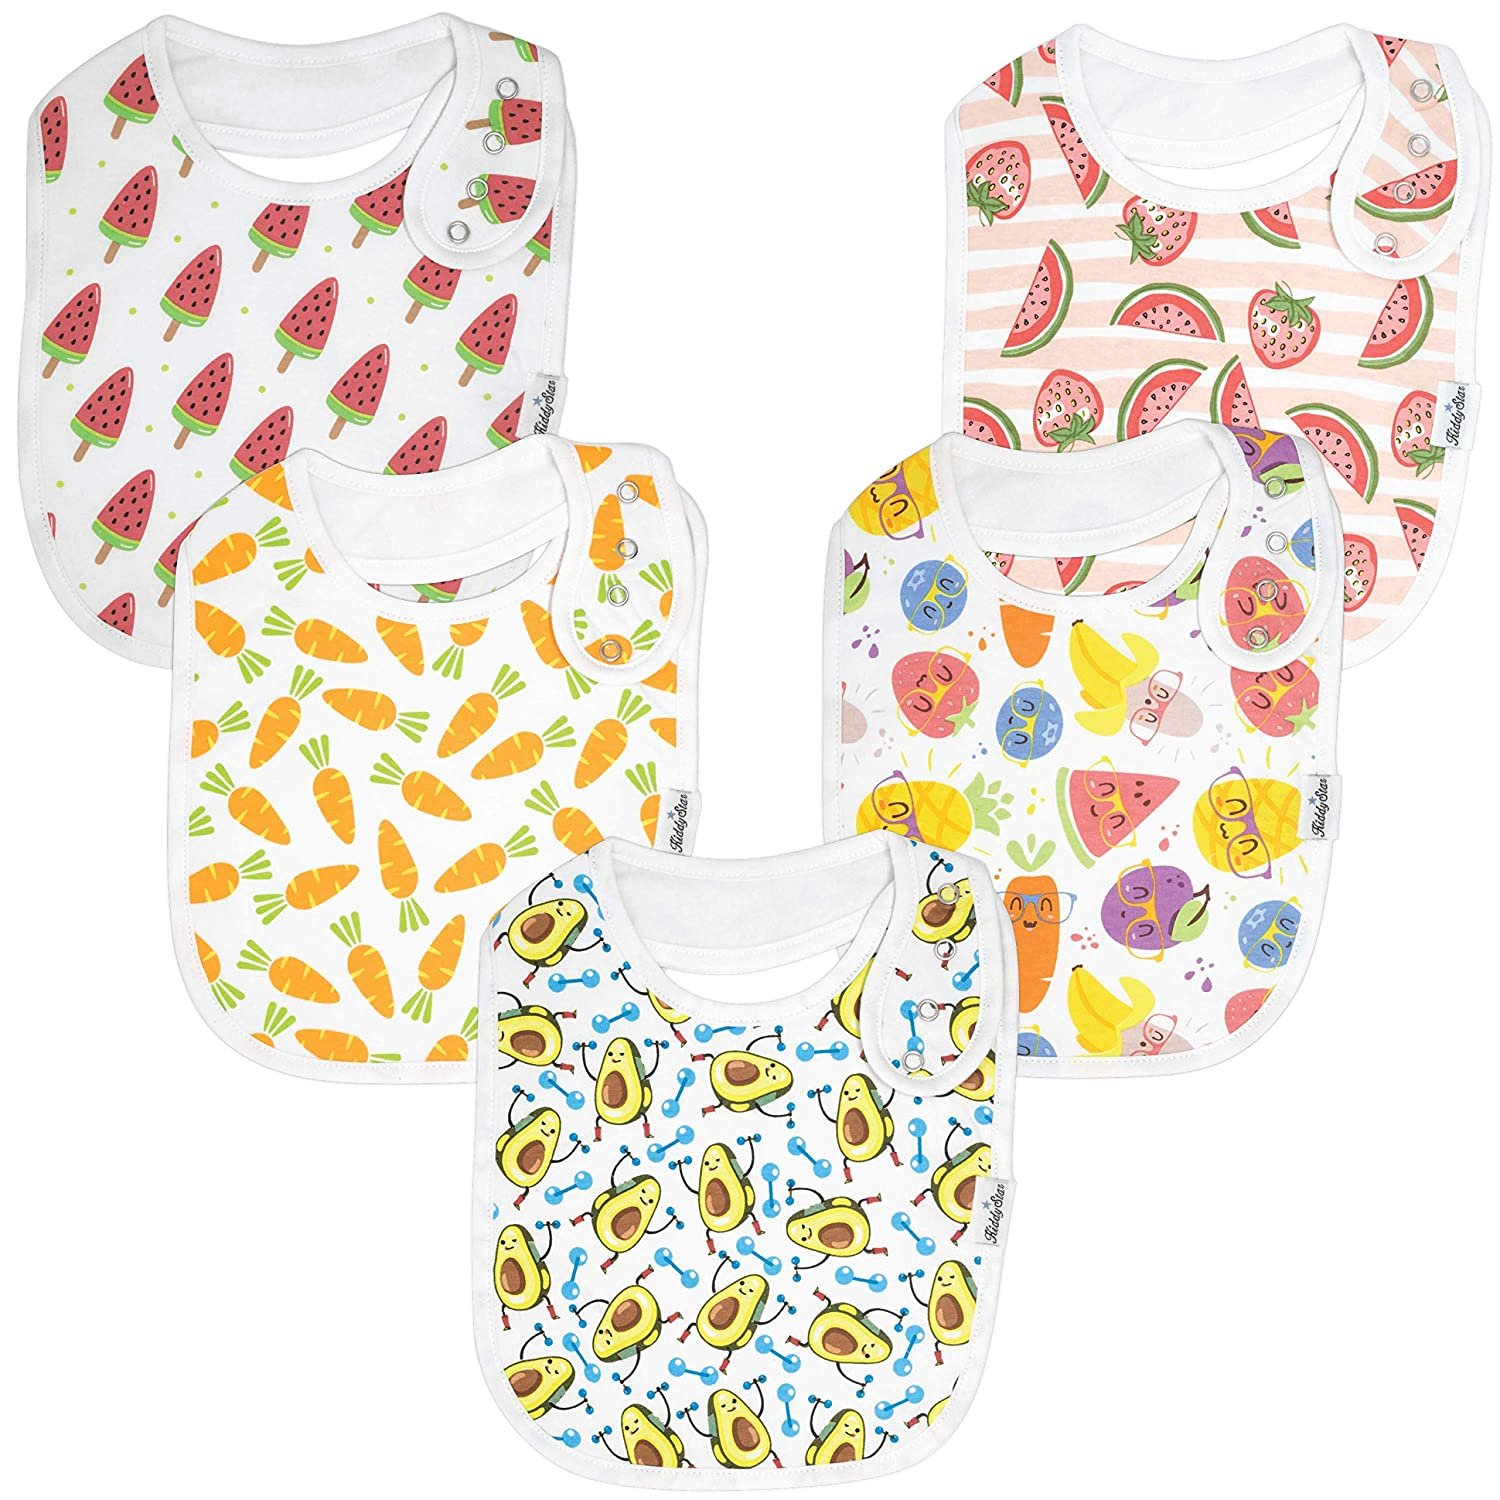 Premium, Organic Cotton Toddler Bibs, Unisex 5-Pack Extra Large Baby Bibs for Boys and Girls by KiddyStar, Baby Shower Gift for Feeding, Drooling, Teething, Adjustable 5 Positions (Carrots & 'Cados)